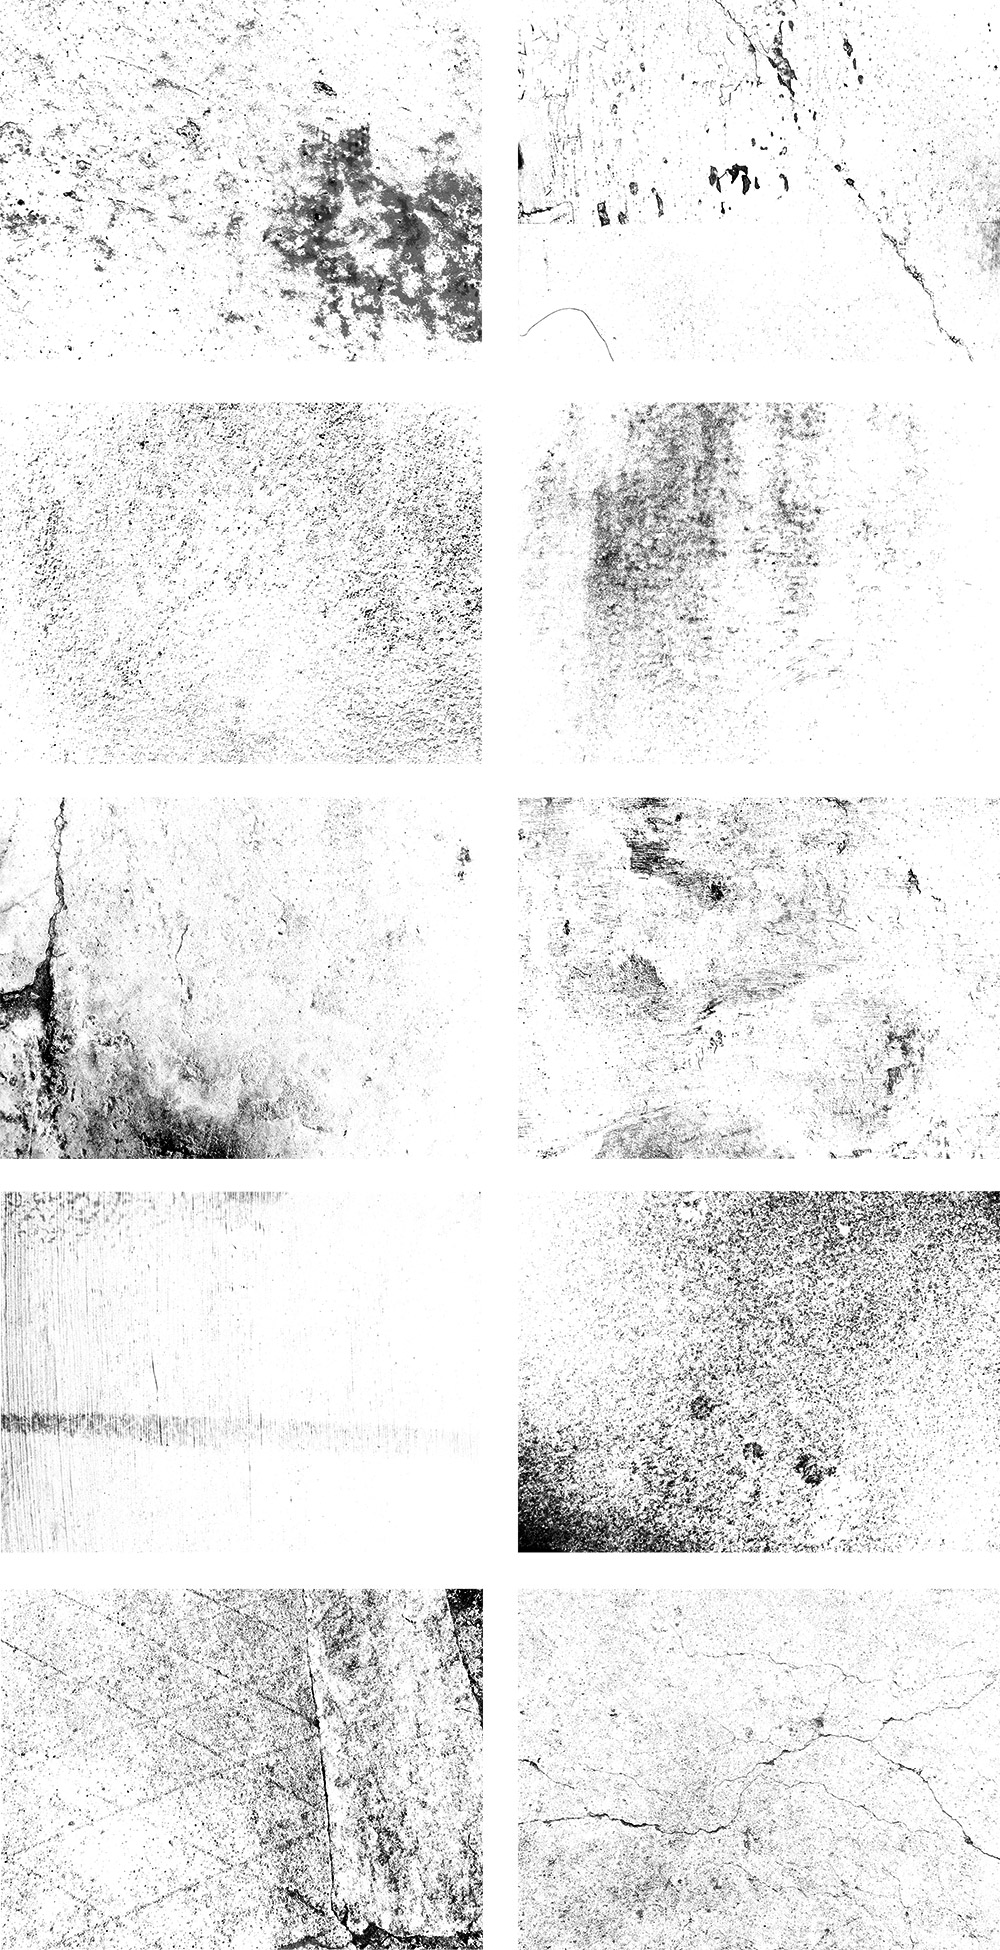 http://www.graphicsfuel.com/wp-content/uploads/2015/05/free-subtle-texture-photoshop-brushes.jpg